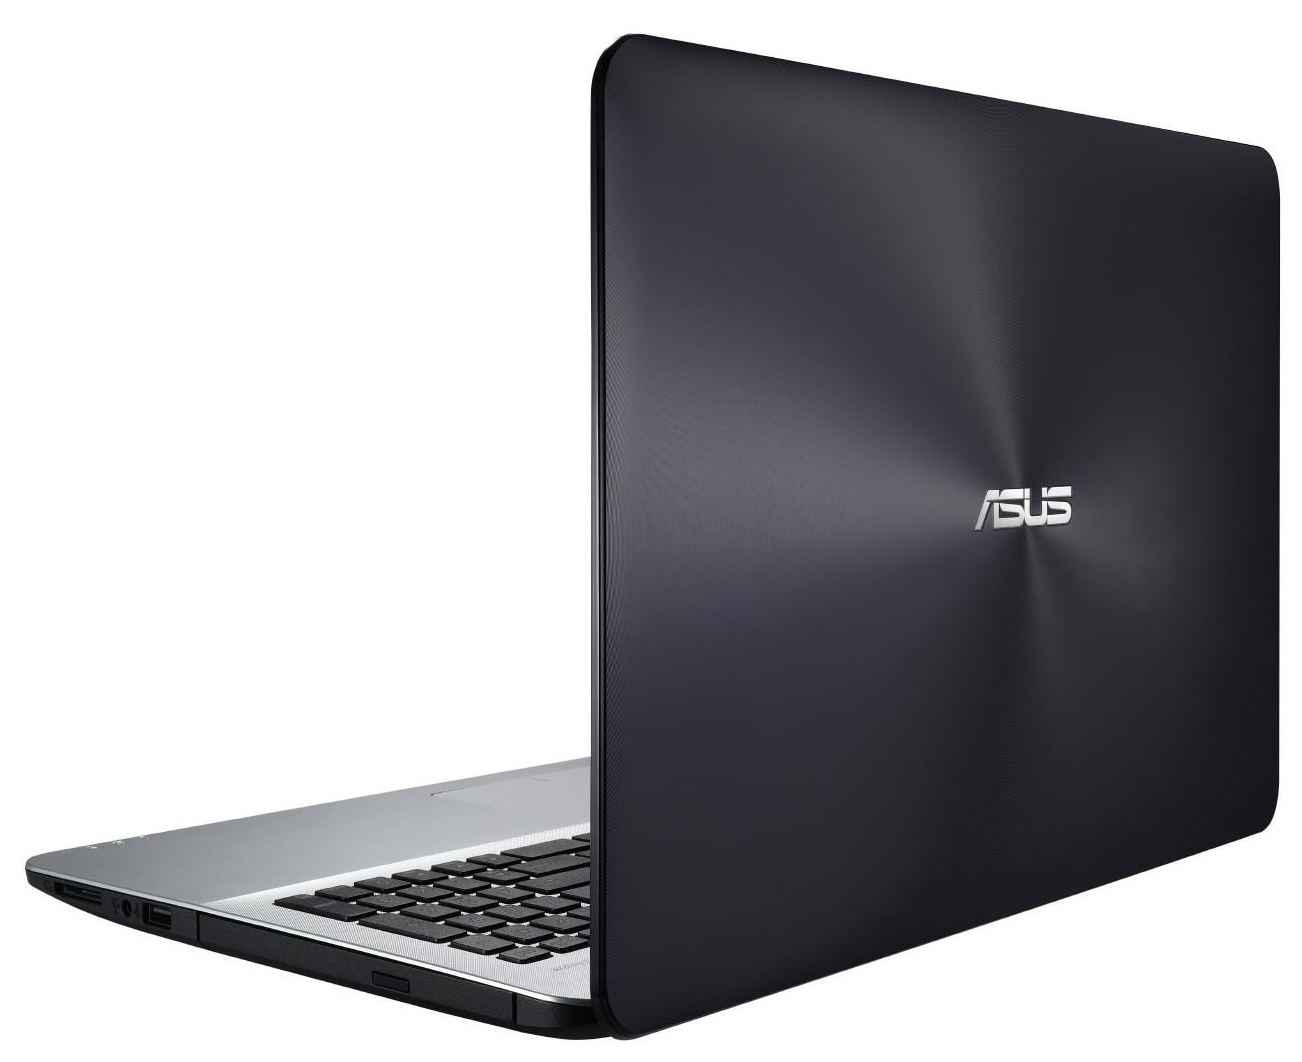 ASUS X555LN LAPTOP DRIVER FOR WINDOWS 10